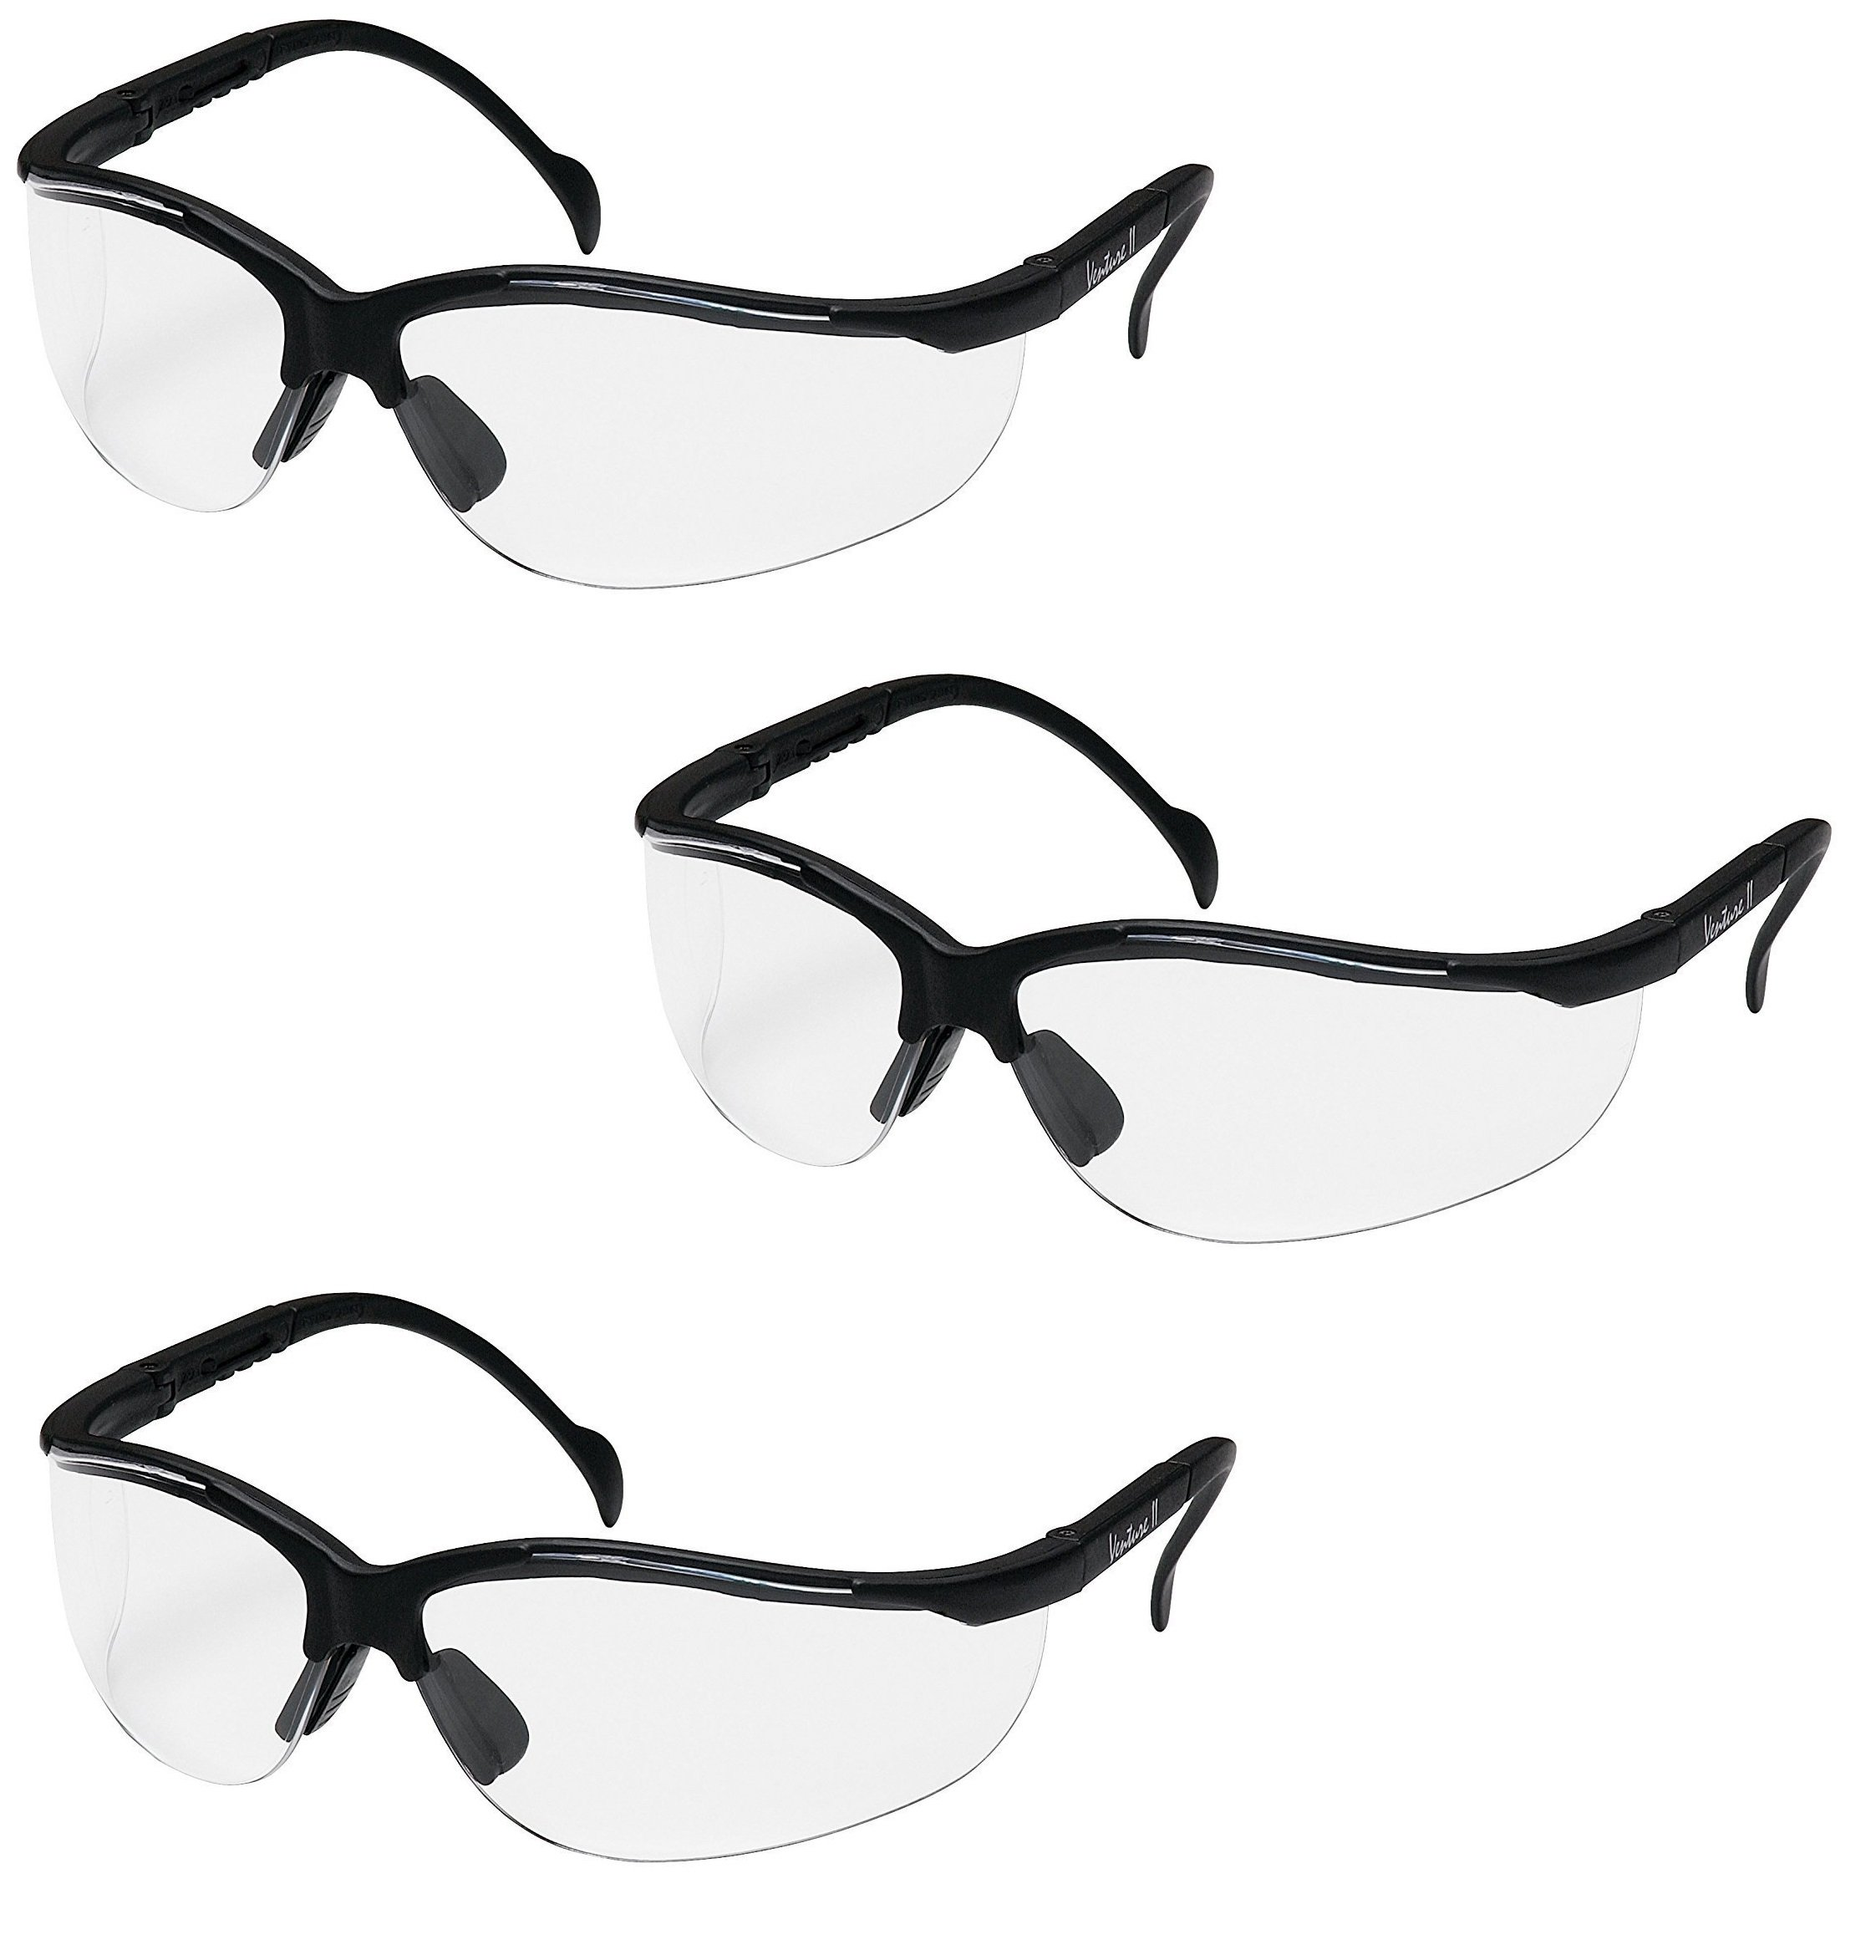 (3 Pair) Pyramex Venture II Safety Eyewear (Clear Anti-Fog Lens)